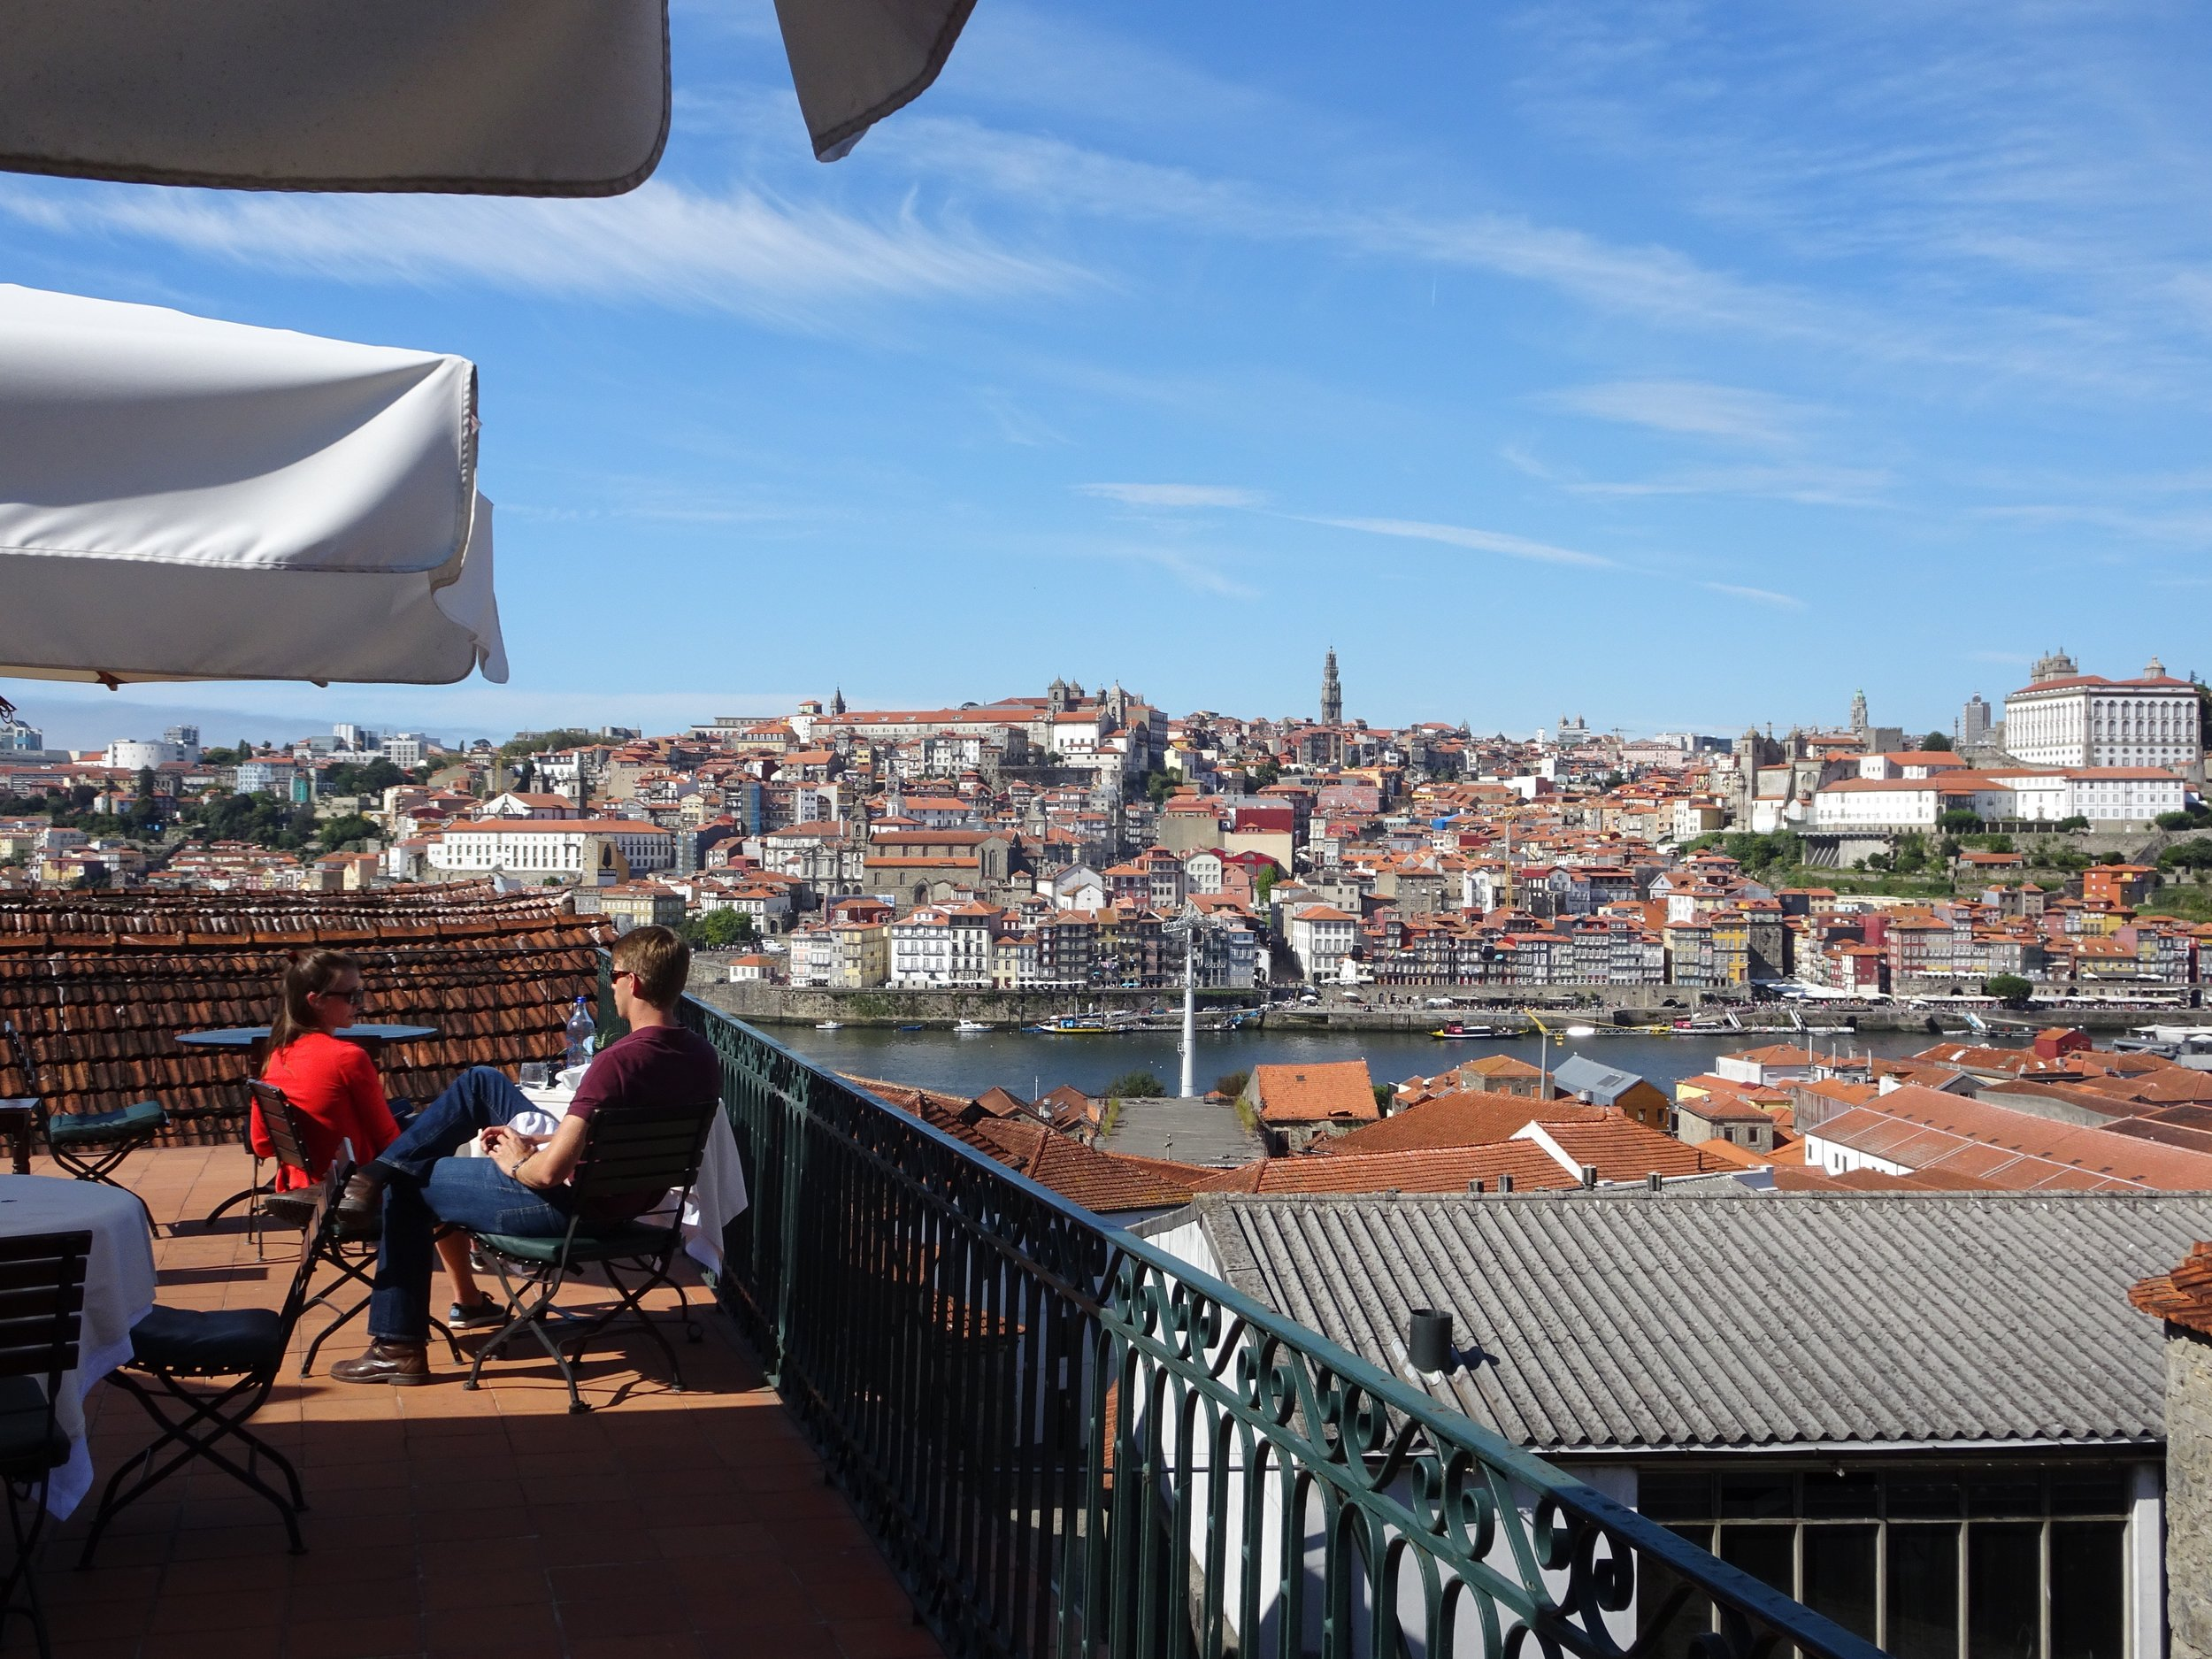 View from restuarant at Taylor Port House, Porto, Portugal - M.Quigley